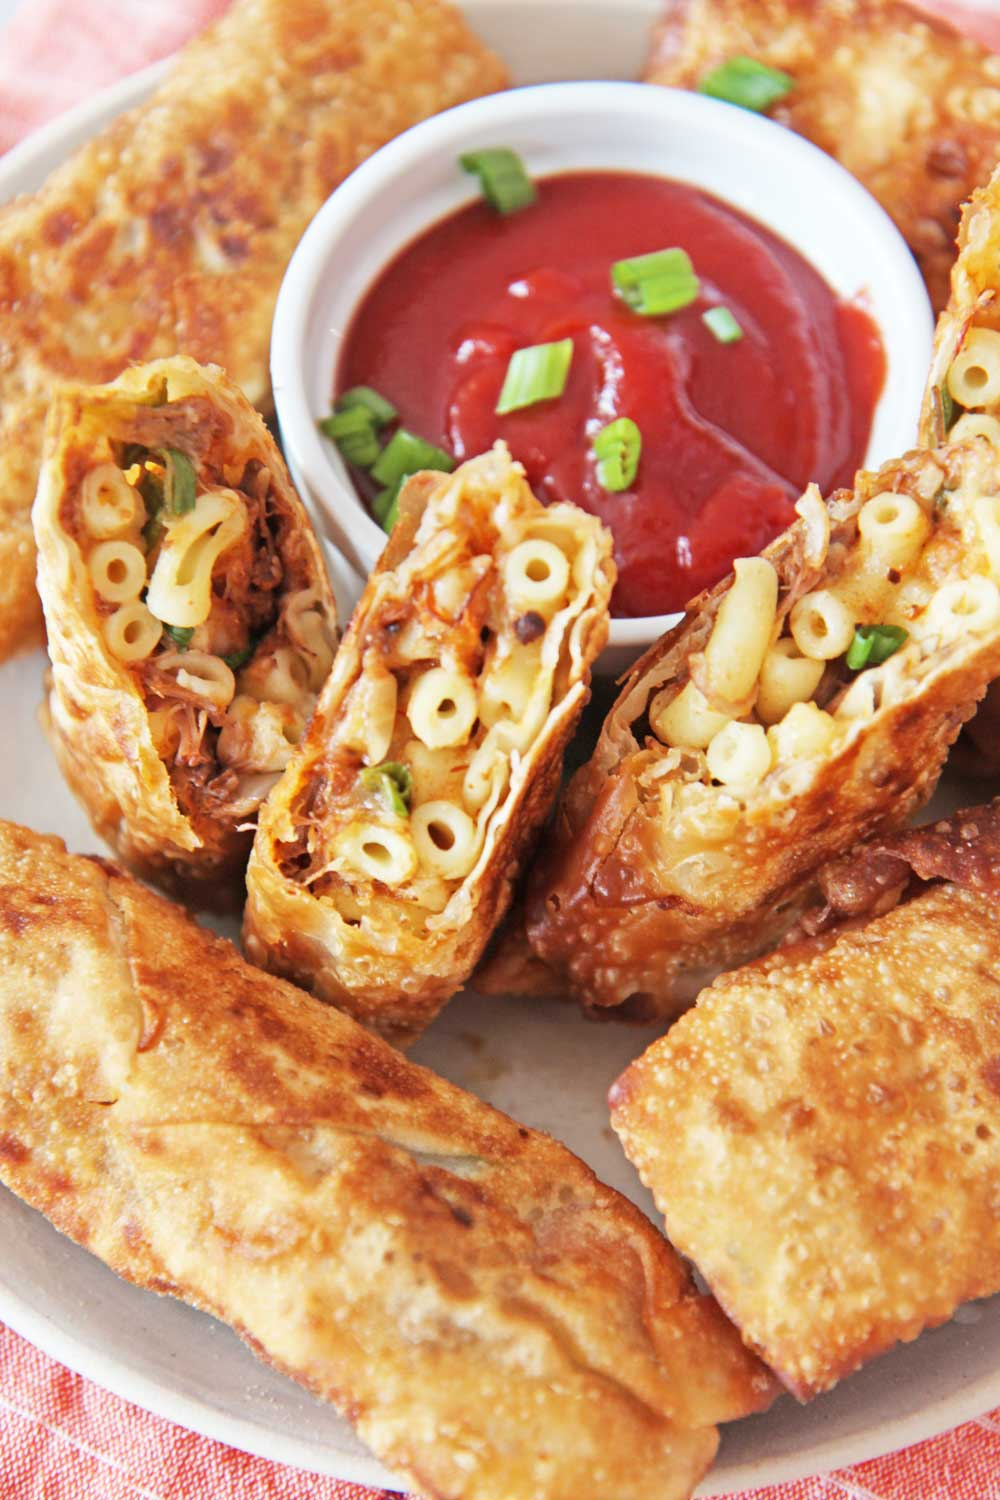 Leftover Mac and Cheese Egg rolls. Leftover Mac and cheese, short ribs, scallions, and lime make this the perfect leftover remake! www.ChopHappy.com #leftovers #eggrolls